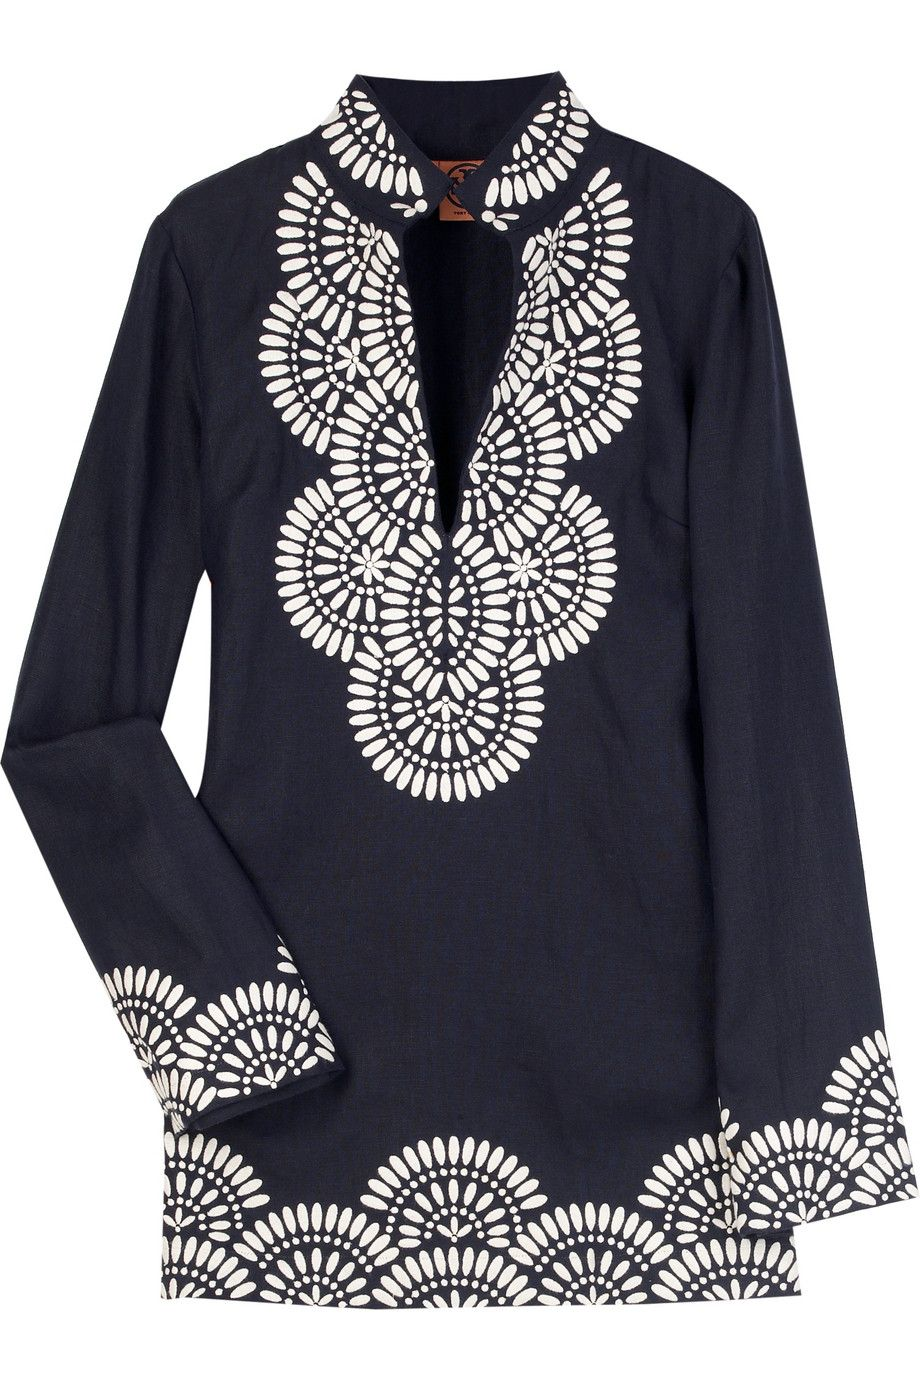 f155a6cbb734 tory burch linen tunic.  395. i ve been coveting this for a long time -  can t wait to pair with white pants